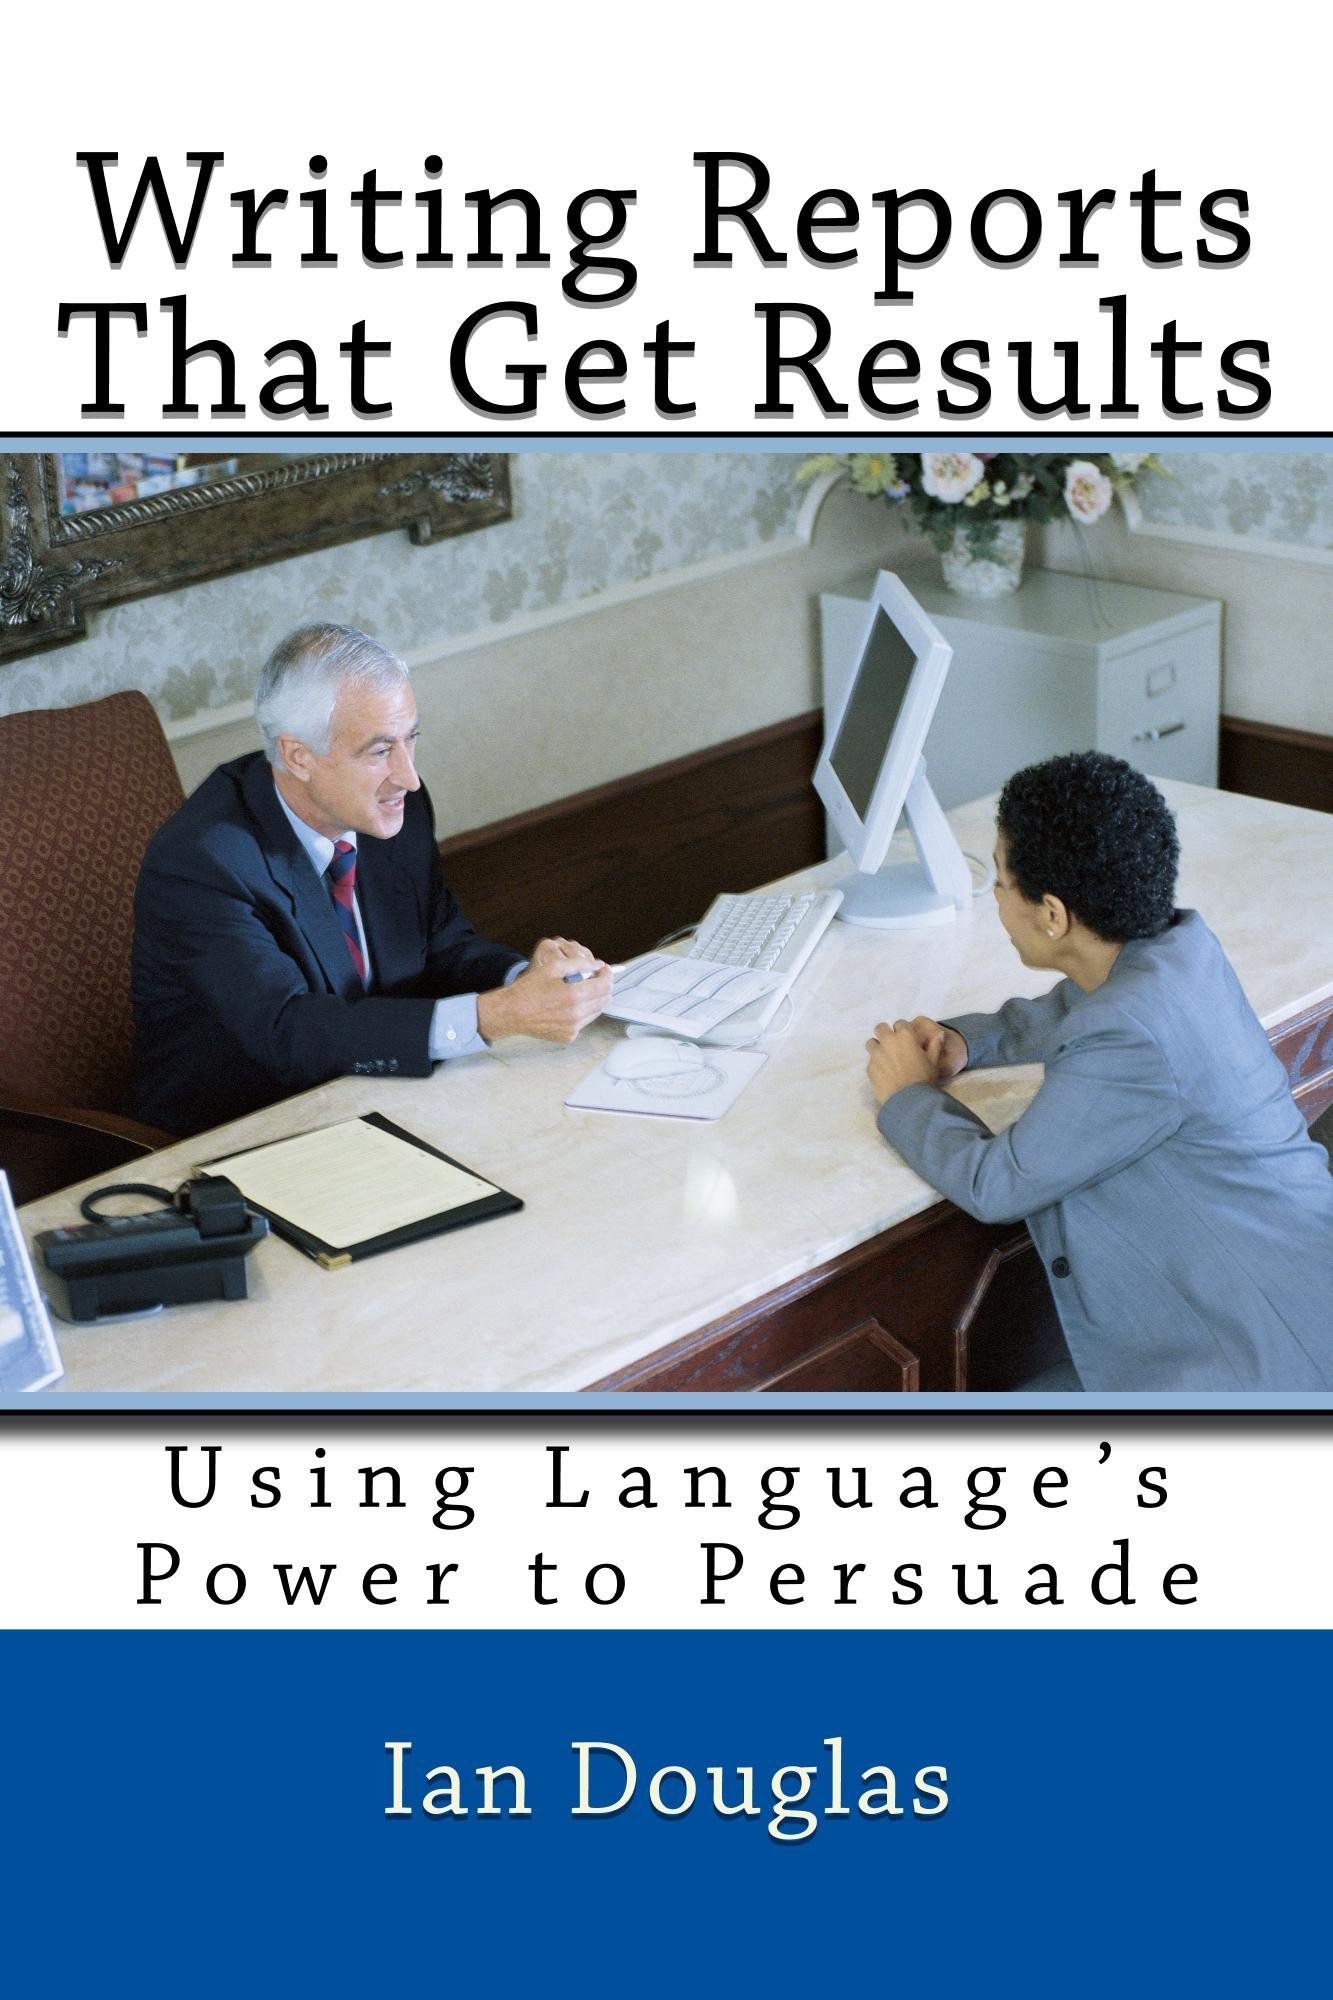 Writing Reports That Get Results: Using Language's Power to Persuade